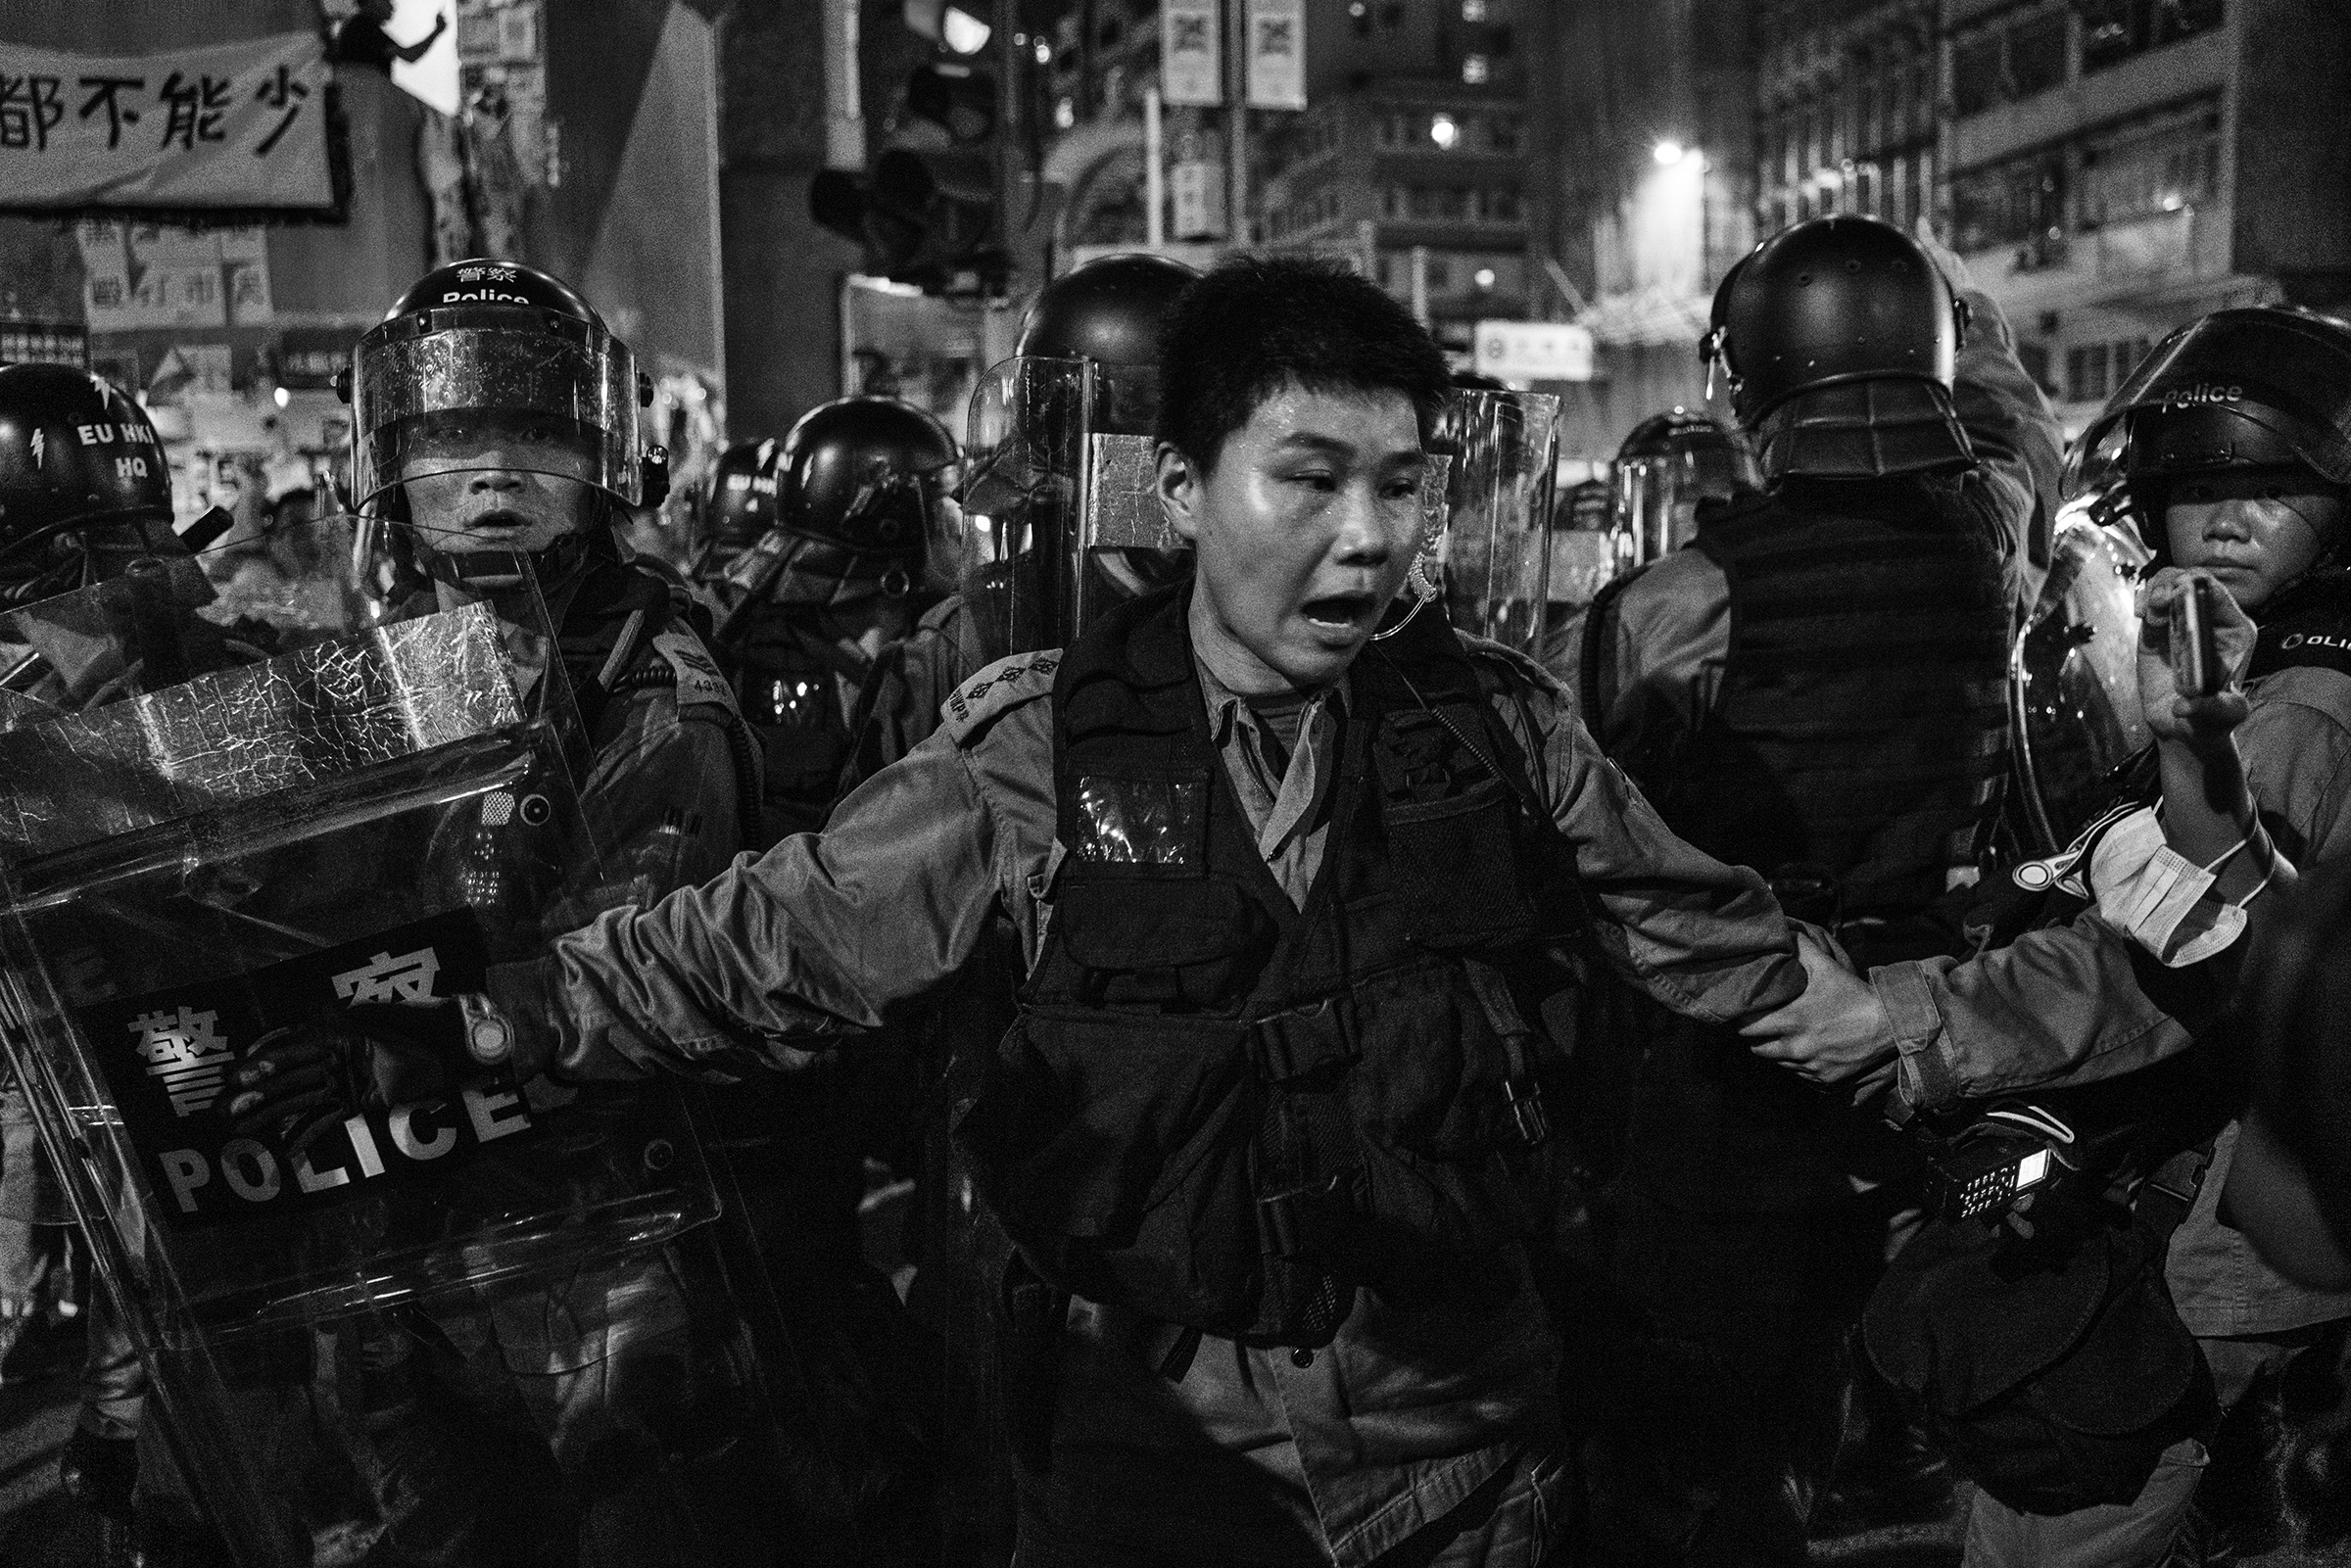 Police and local residents clash in the Sai Wan Ho area of Hong Kong on Aug. 12.